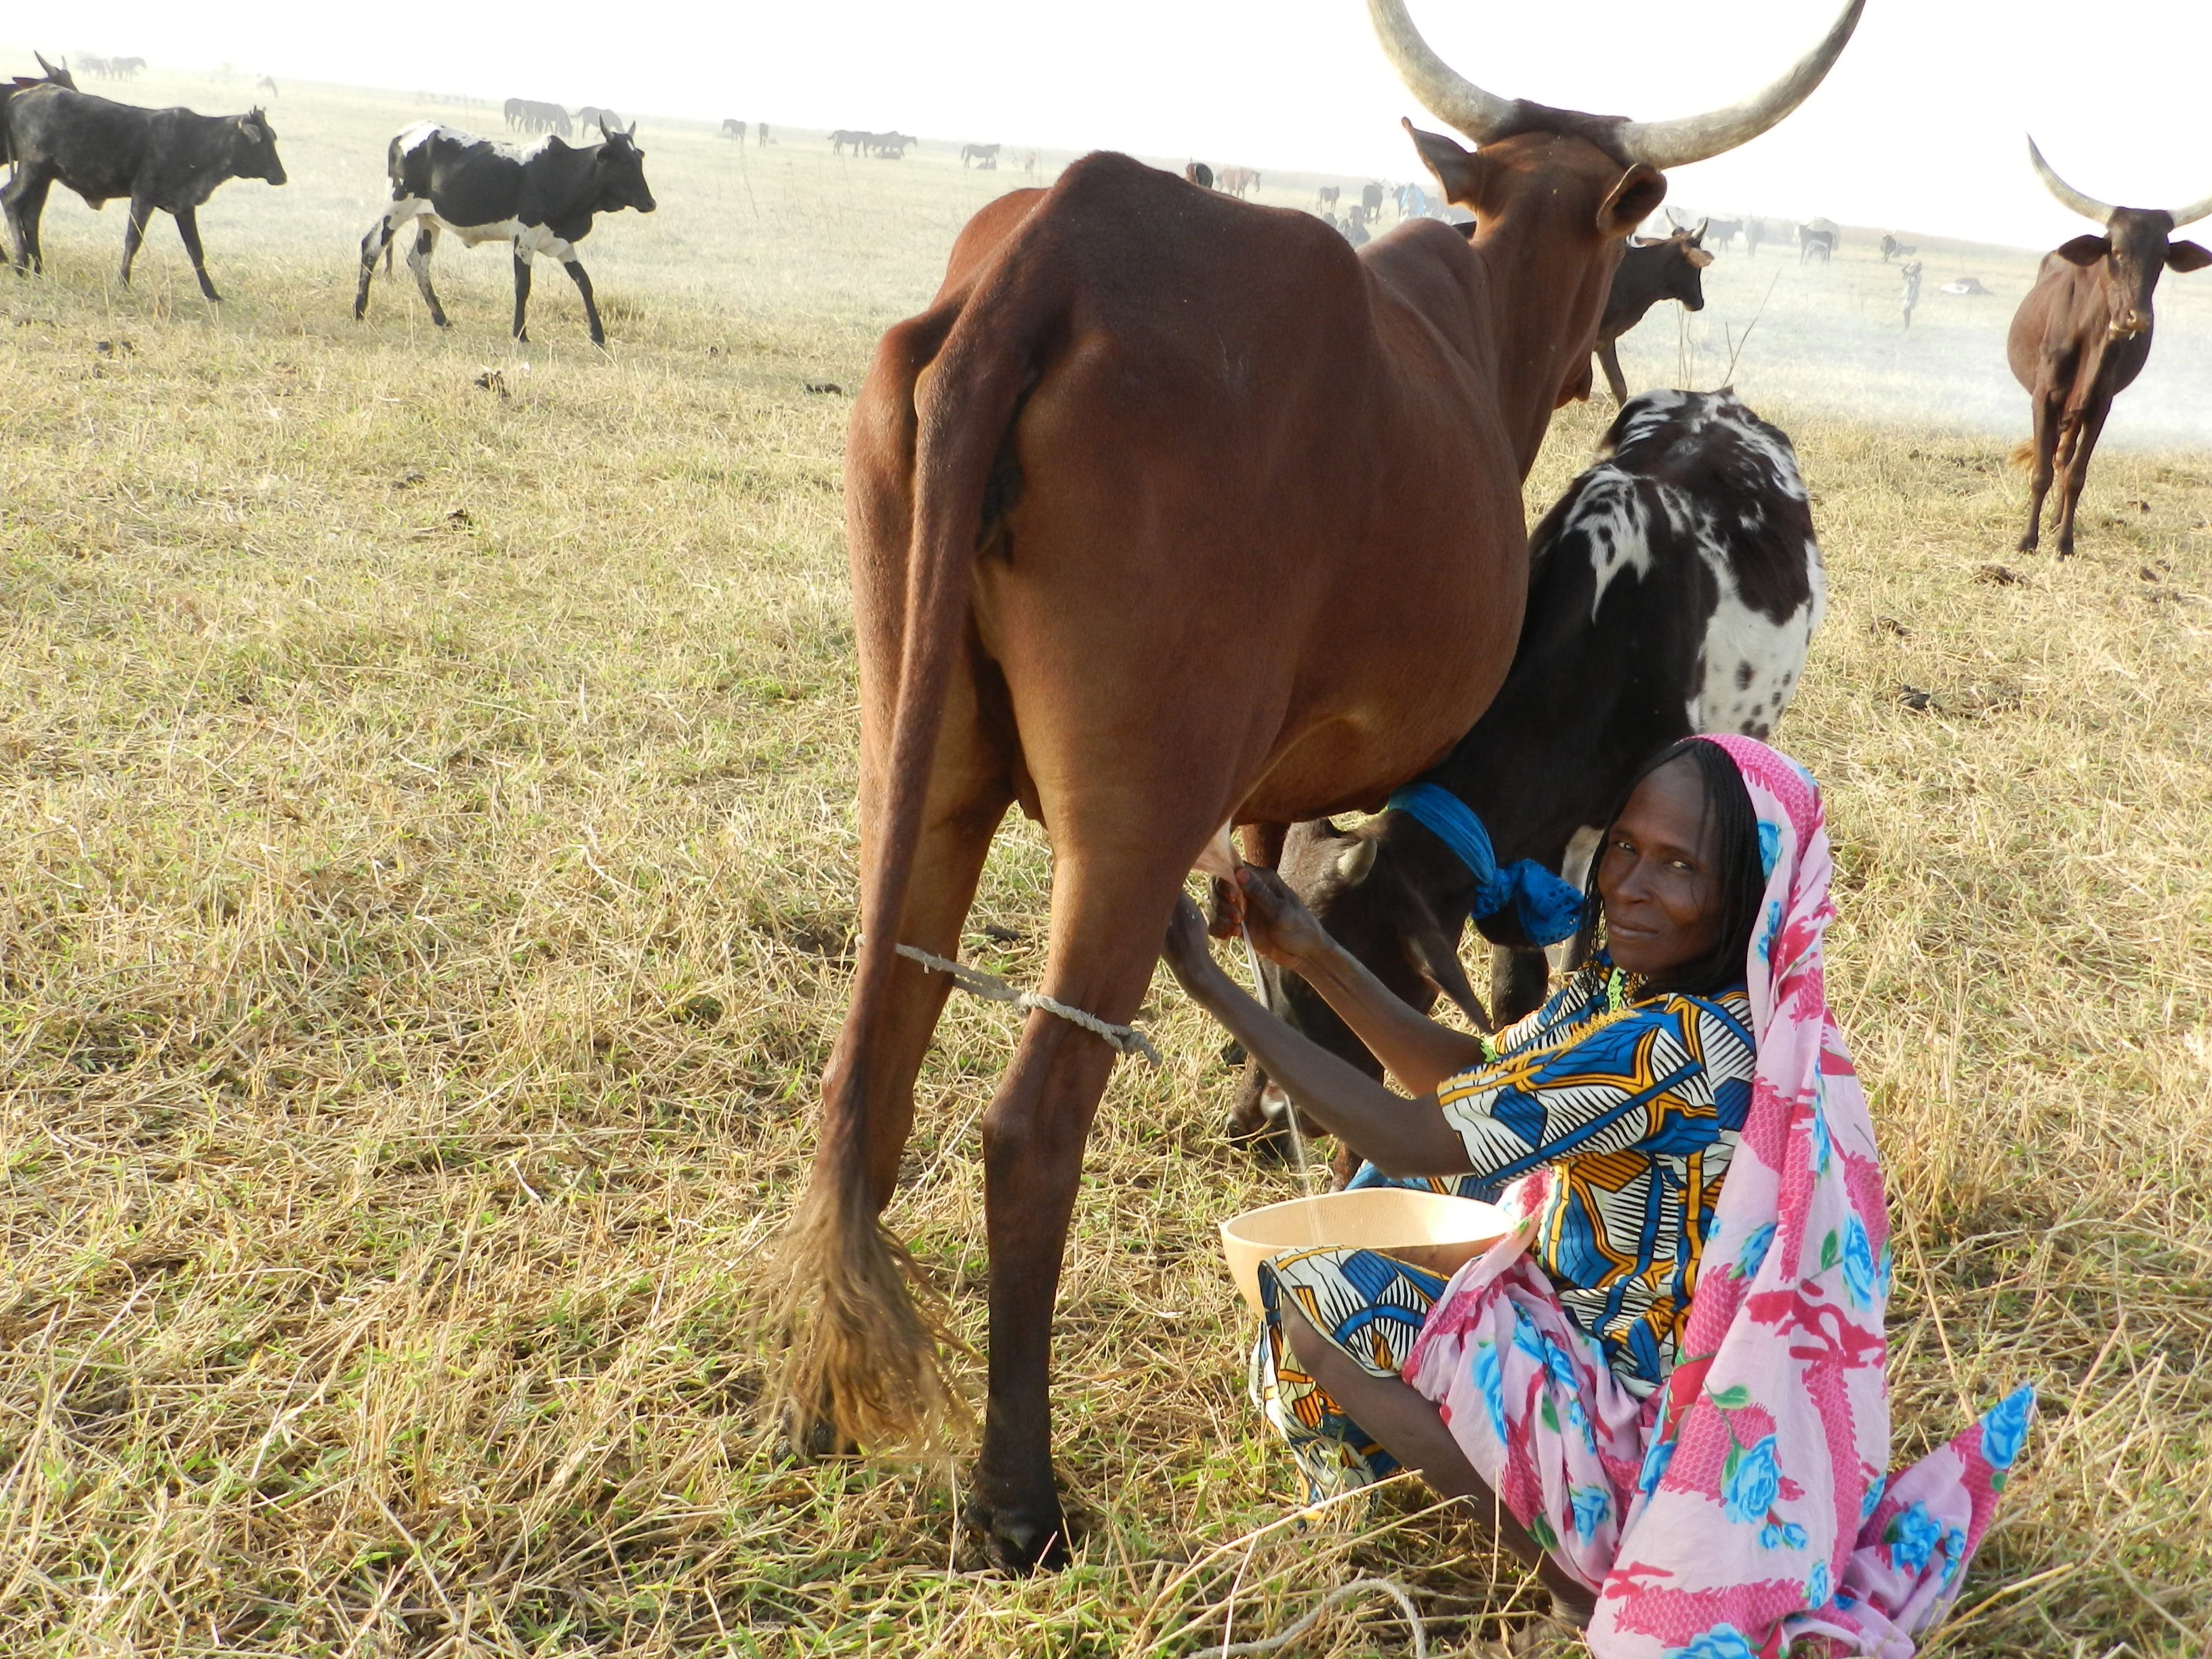 A black woman wearing a blue and gold patterned dress is wrapped in a colorful (pink, blue, white and yellow) blanket. She is milking a cow and looking at the camera. Beside the cow, a calf is grazing. Behind them are three more oxen.